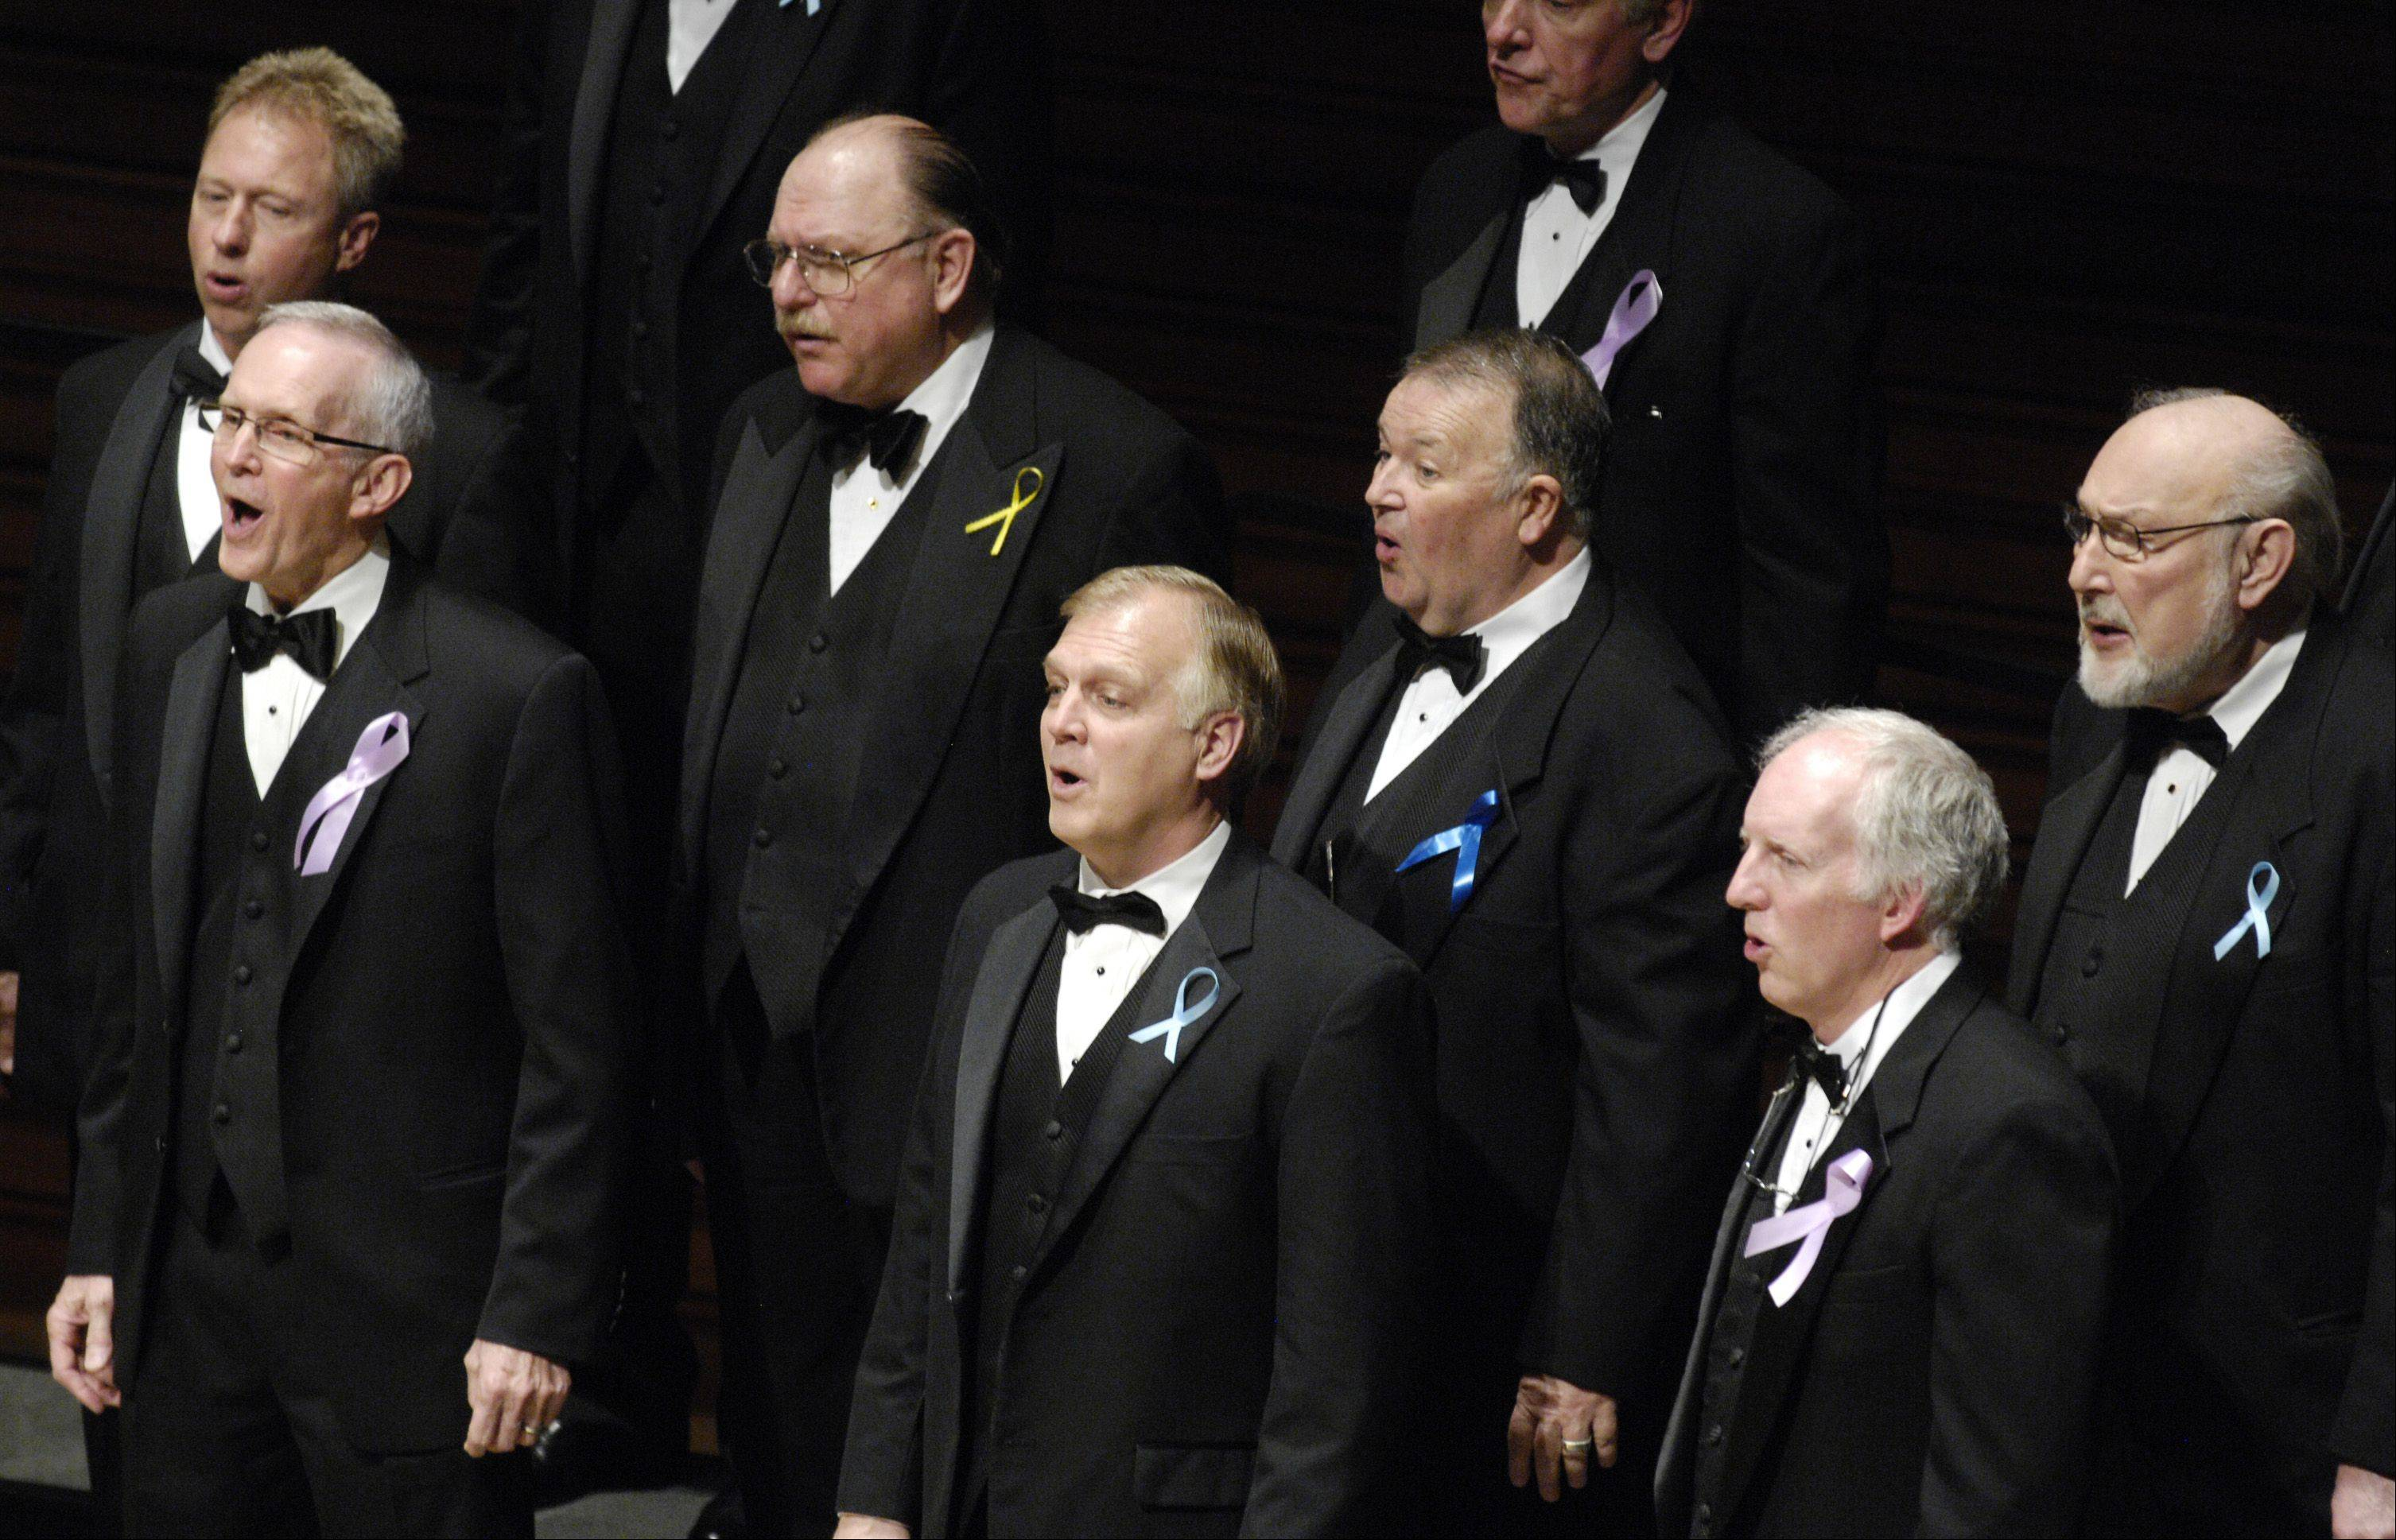 The Naperville Men�s Glee Club performs during the �Voices of Hope� concert Sunday at Wentz Concert Hall at North Central College in Naperville. It was a special concert for people whose lives were touched by cancer.